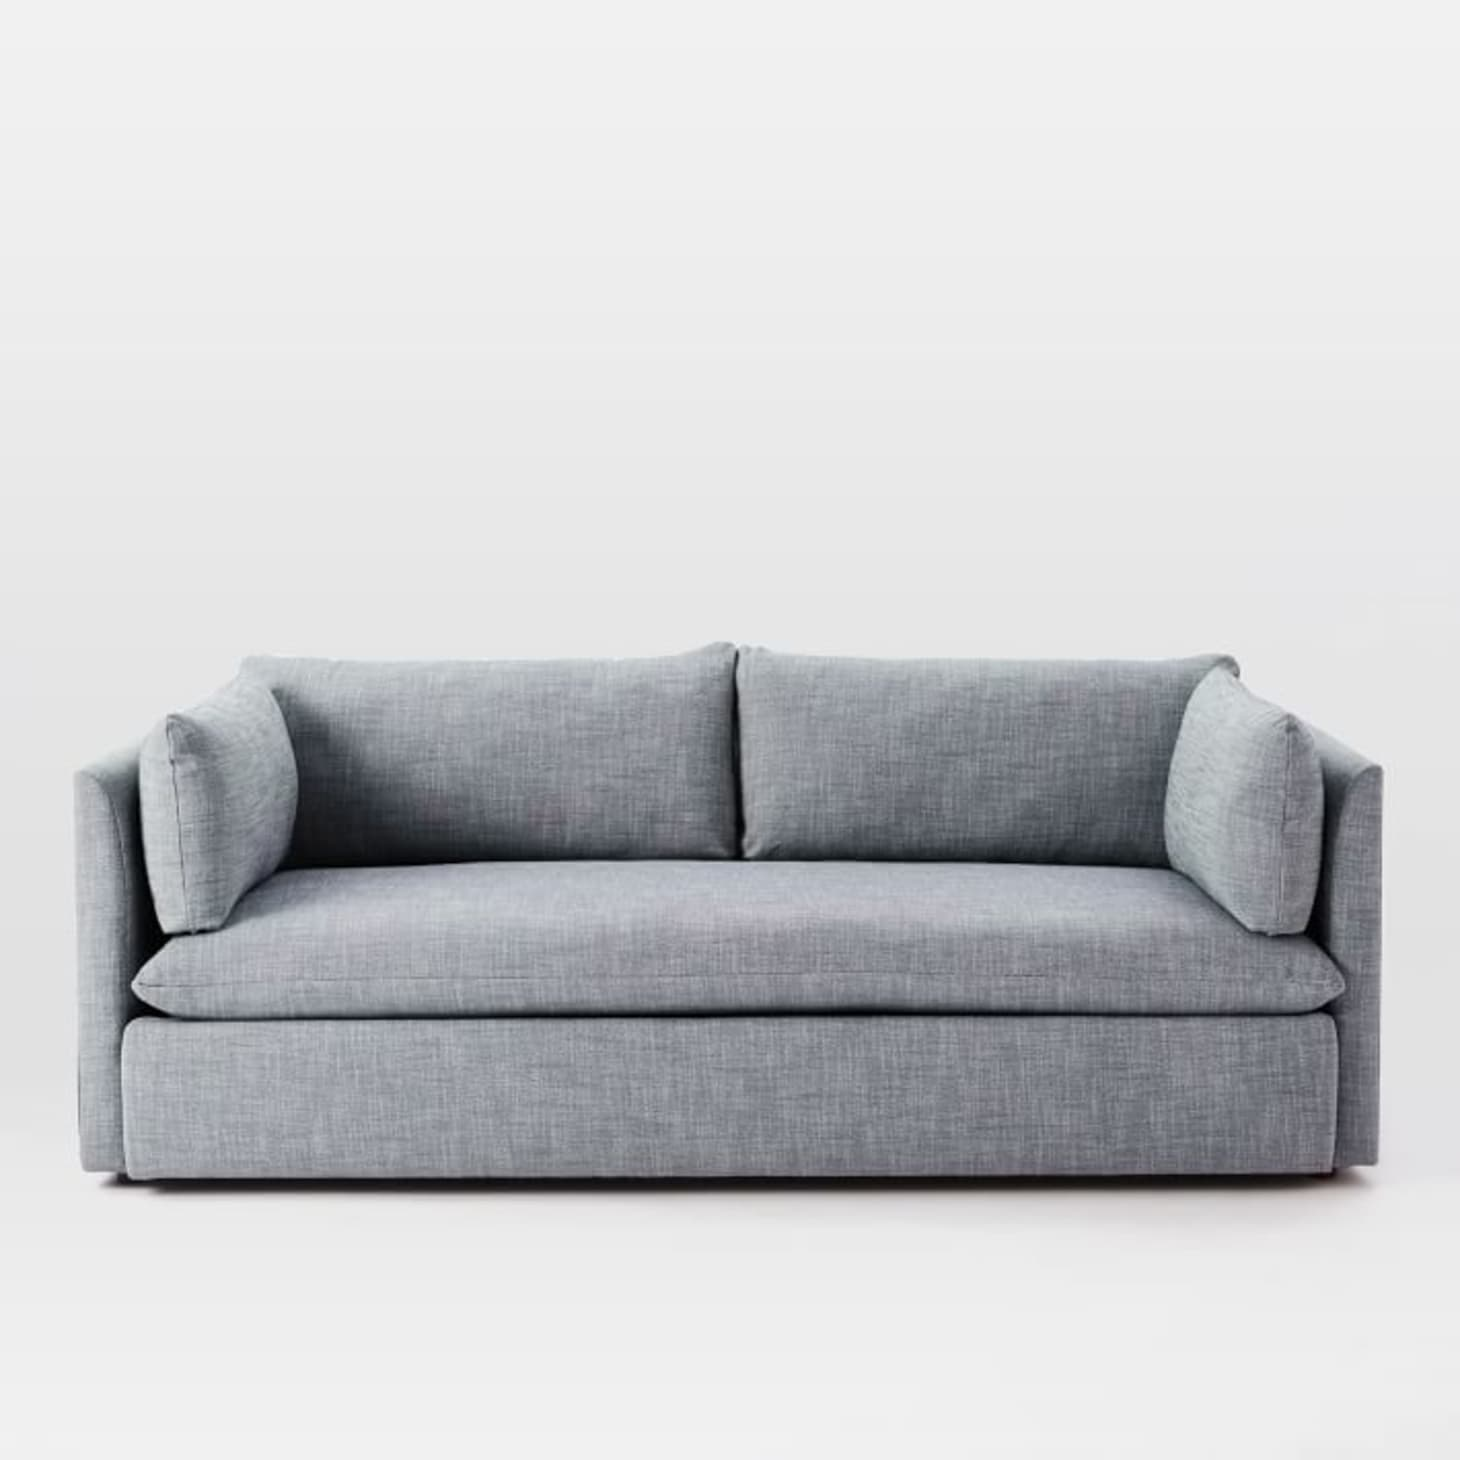 Pleasing The Most Comfortable Sofas At West Elm Tested Reviewed Pdpeps Interior Chair Design Pdpepsorg